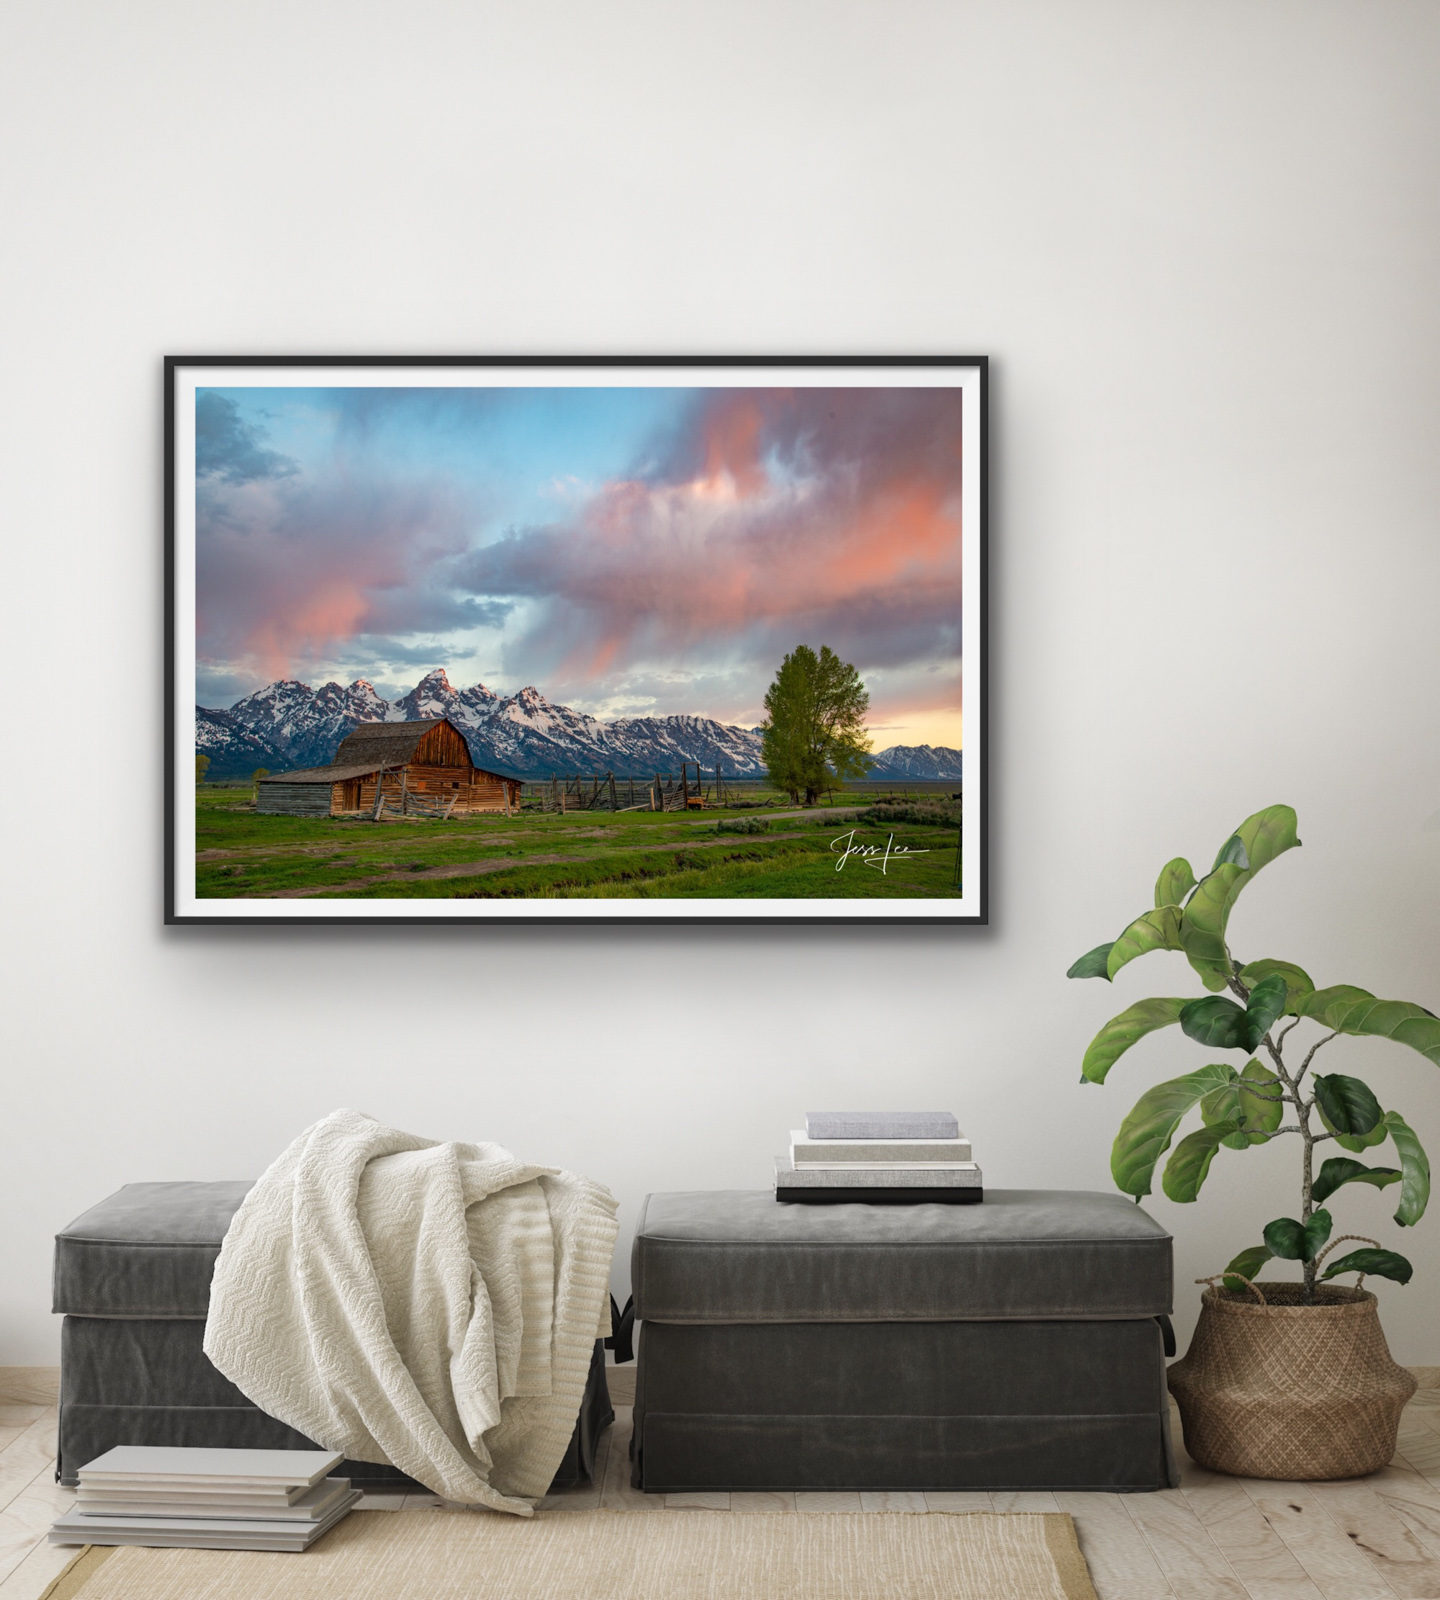 The Best Fine Art Photography. Luxury High Quality Photography Prints on your wallart space by world famous Fine Art Photographer...